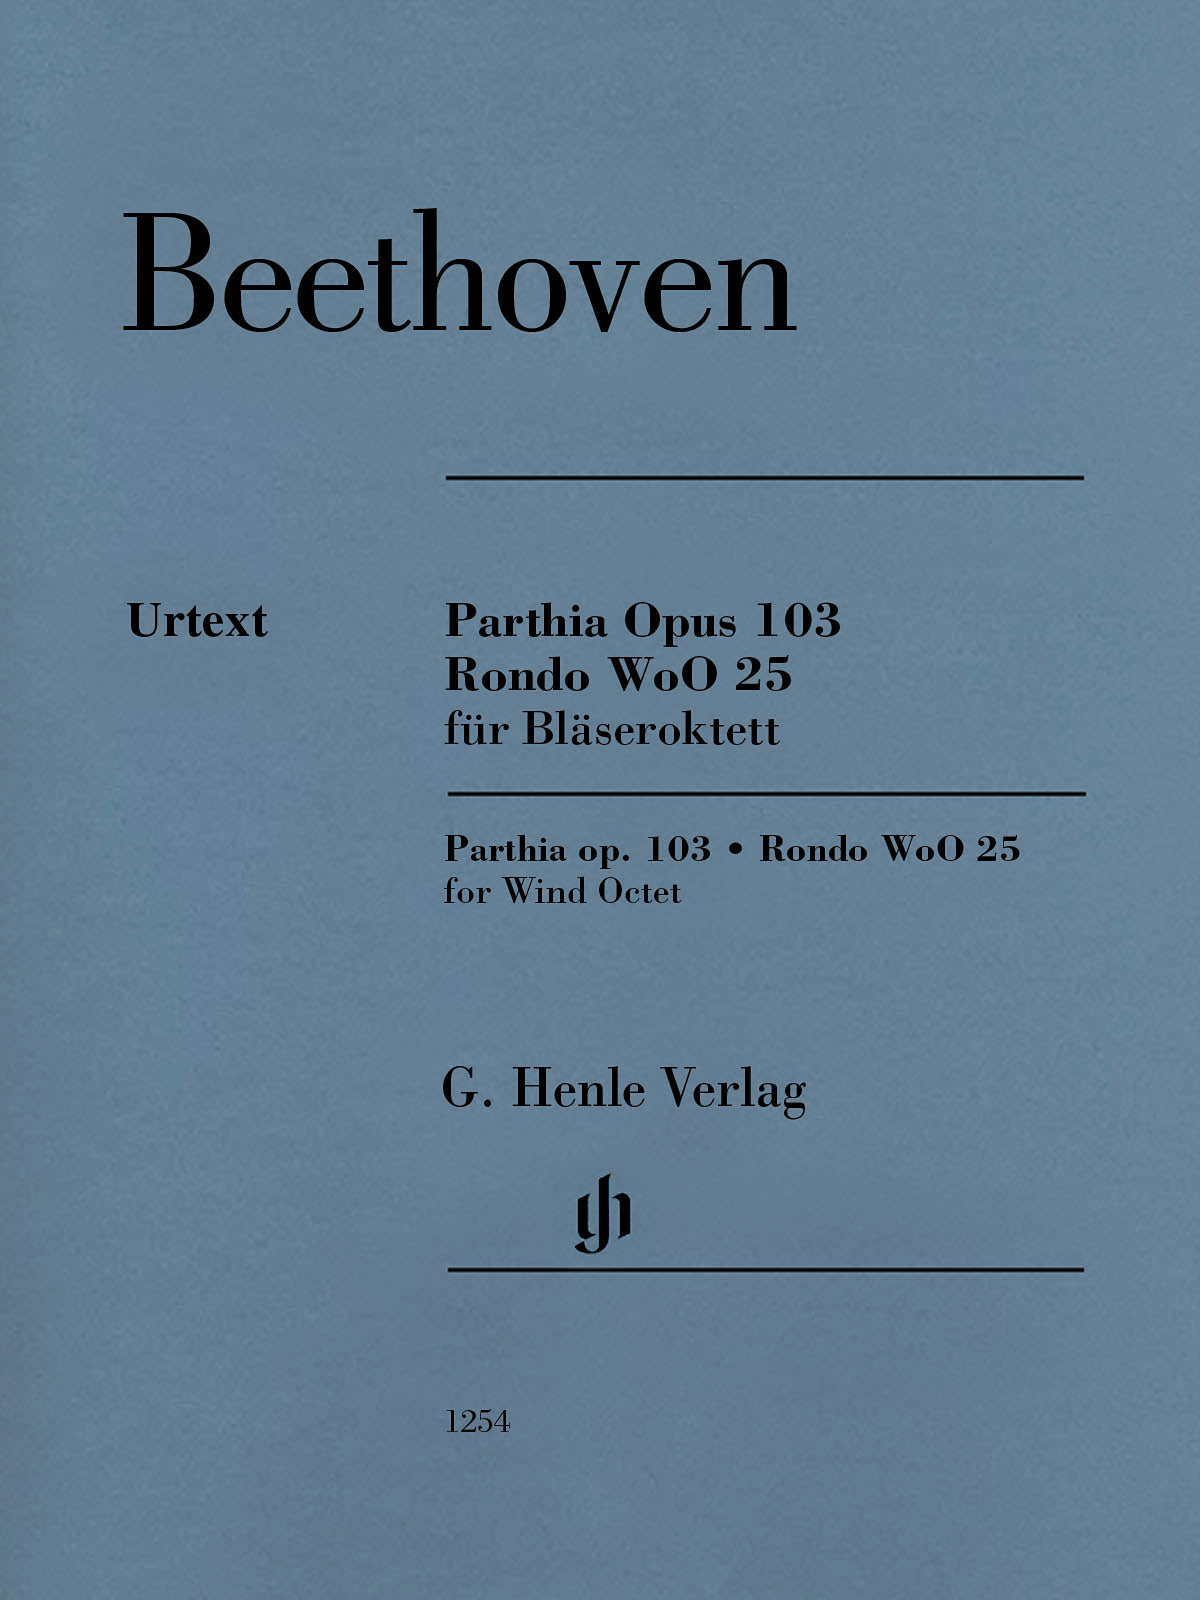 Beethoven: Parthia, Op. 103 and Rondo, WoO 25